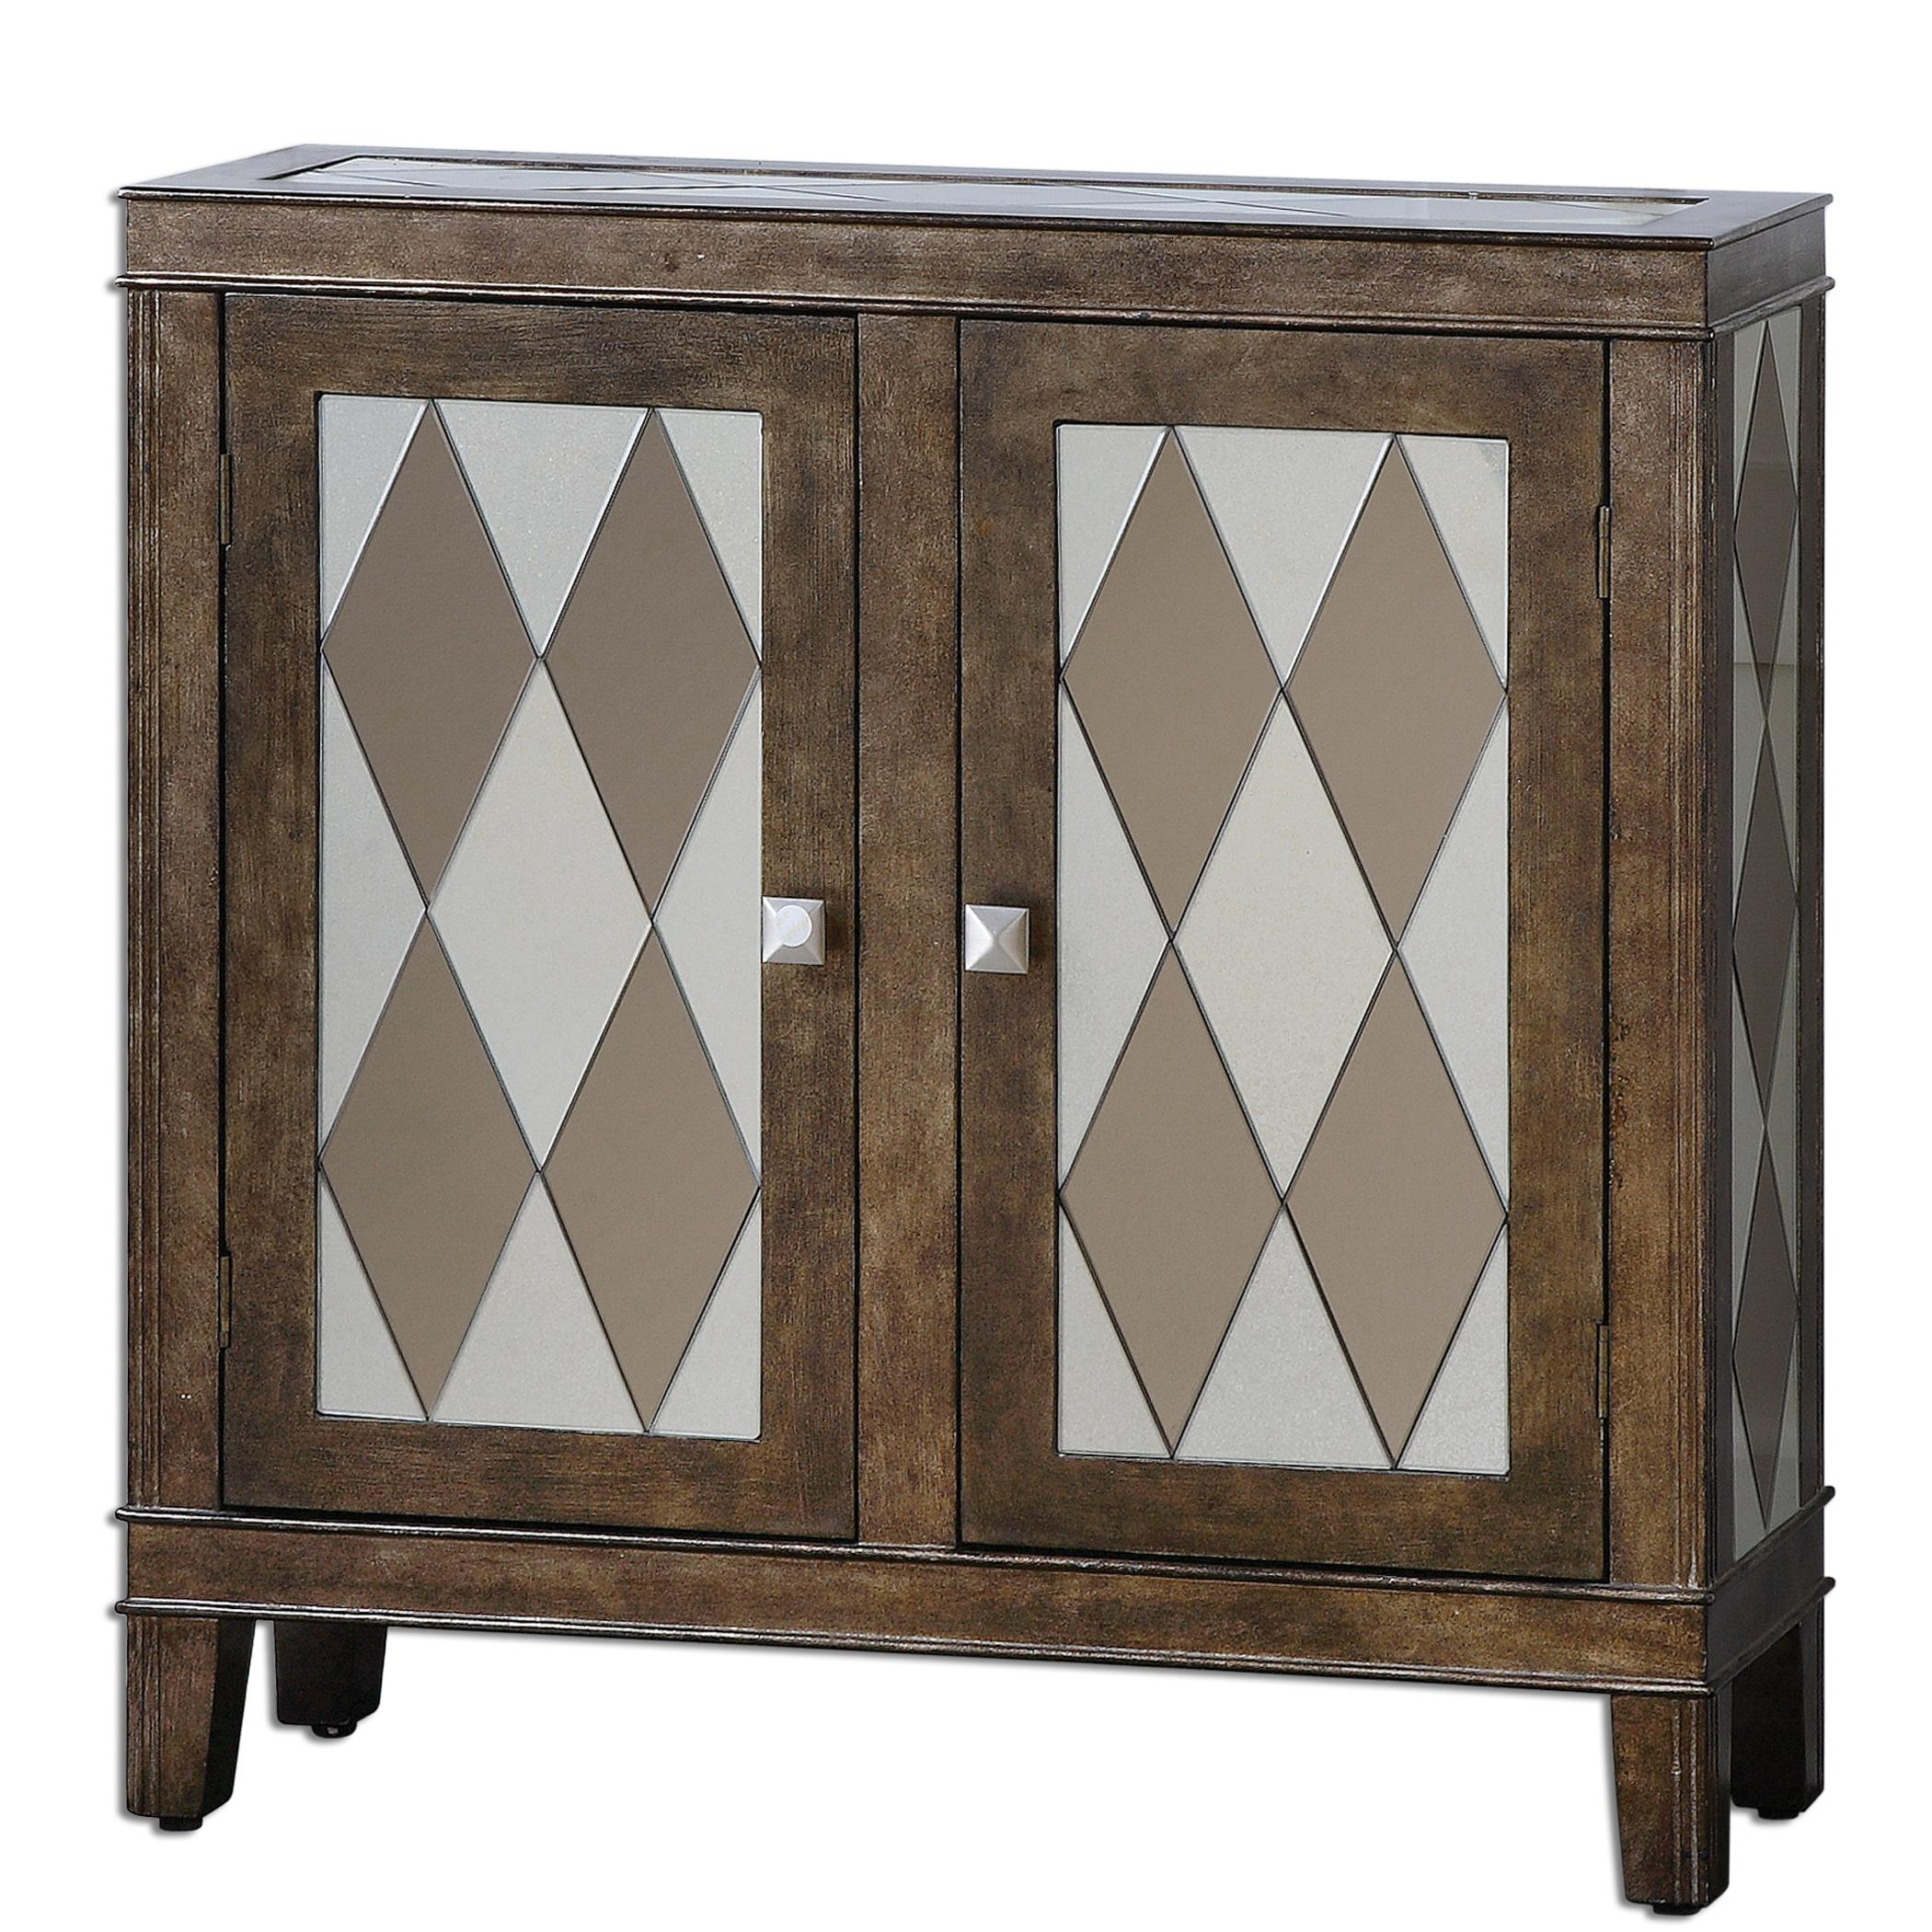 Uttermost Accent Furniture Trivelin Wooden Console Cabinet - Item Number: 24374